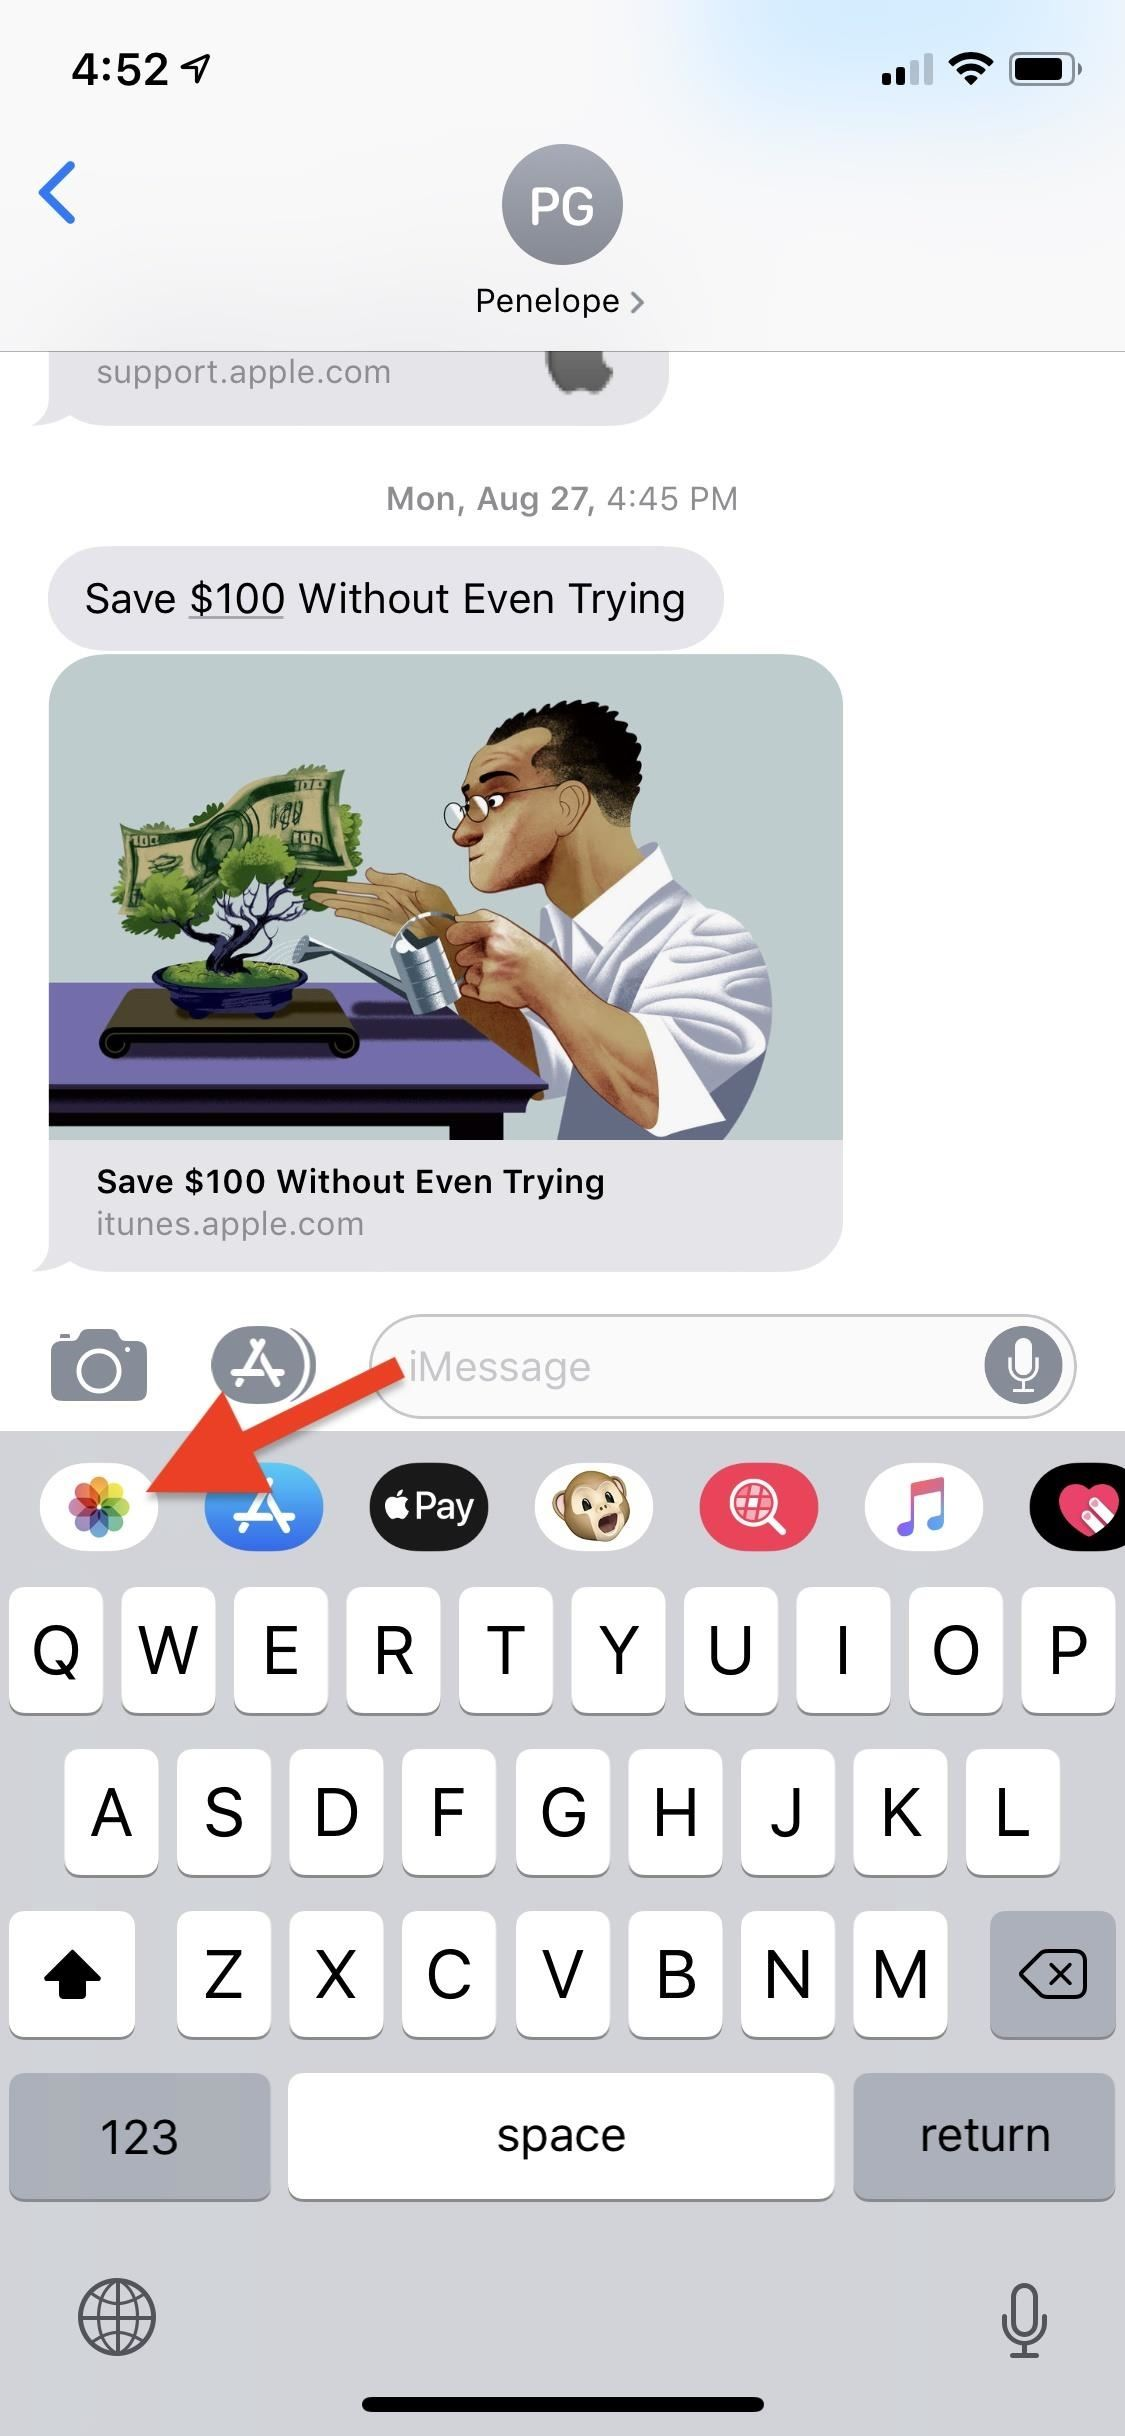 Sending Photos in Messages It's Just Much Annoying in iOS 12